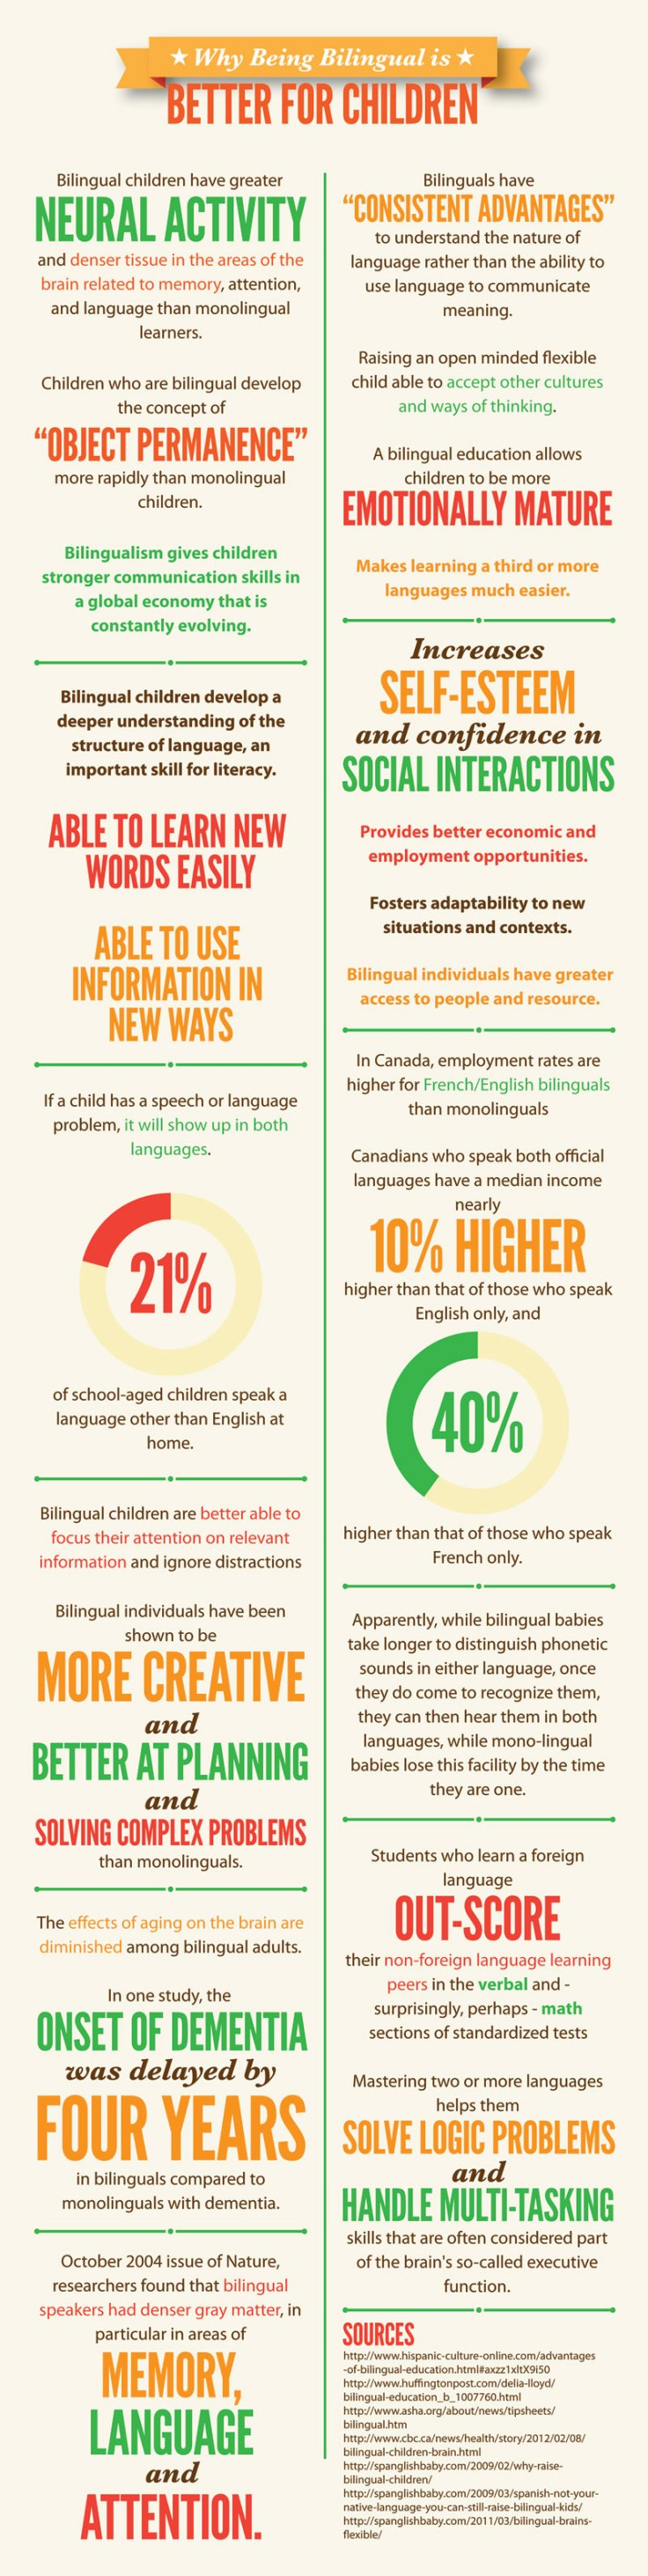 NEW Bilingual Children Infographic QueMeansWhat.com